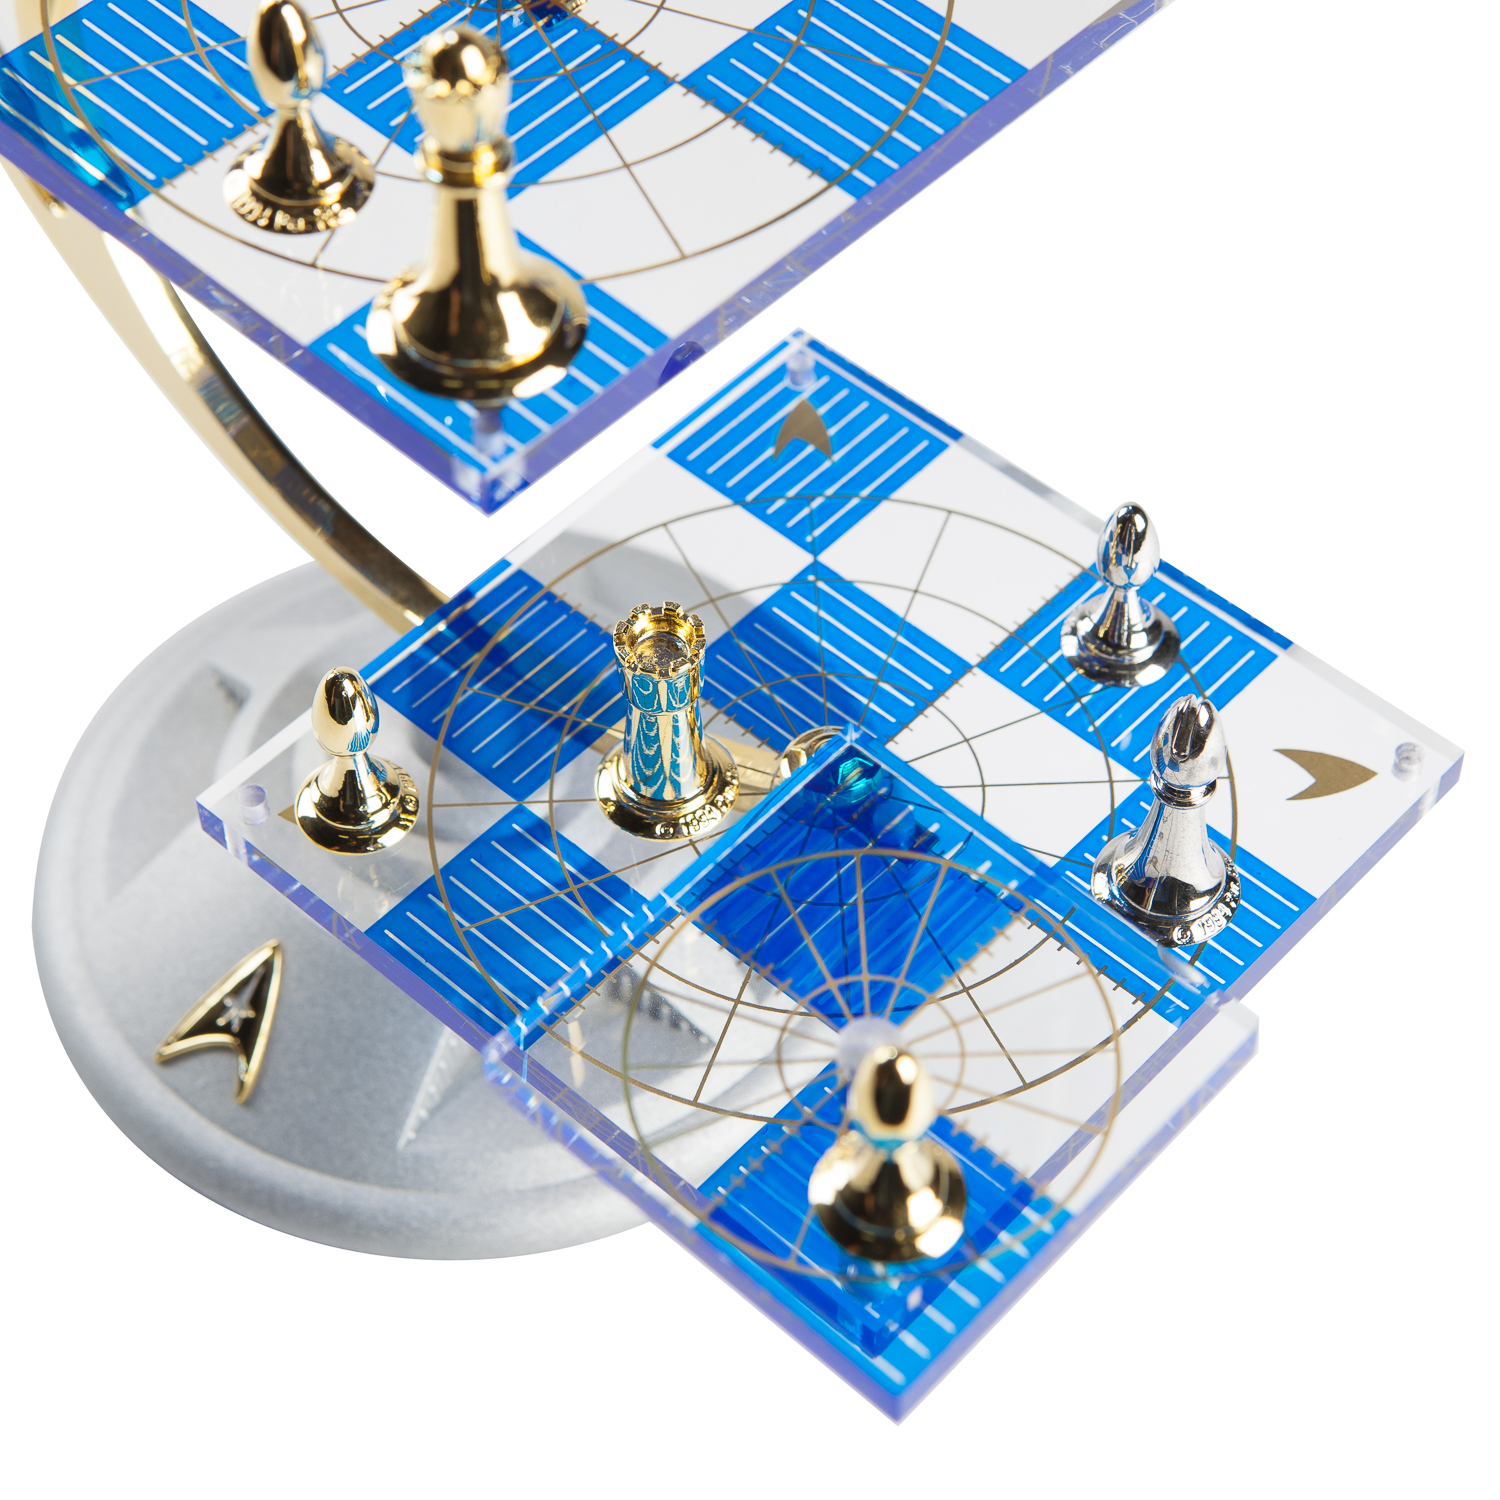 The trek collective franklin mint tridimensional chess set returning for the 50th anniversary - Tri dimensional chess board ...